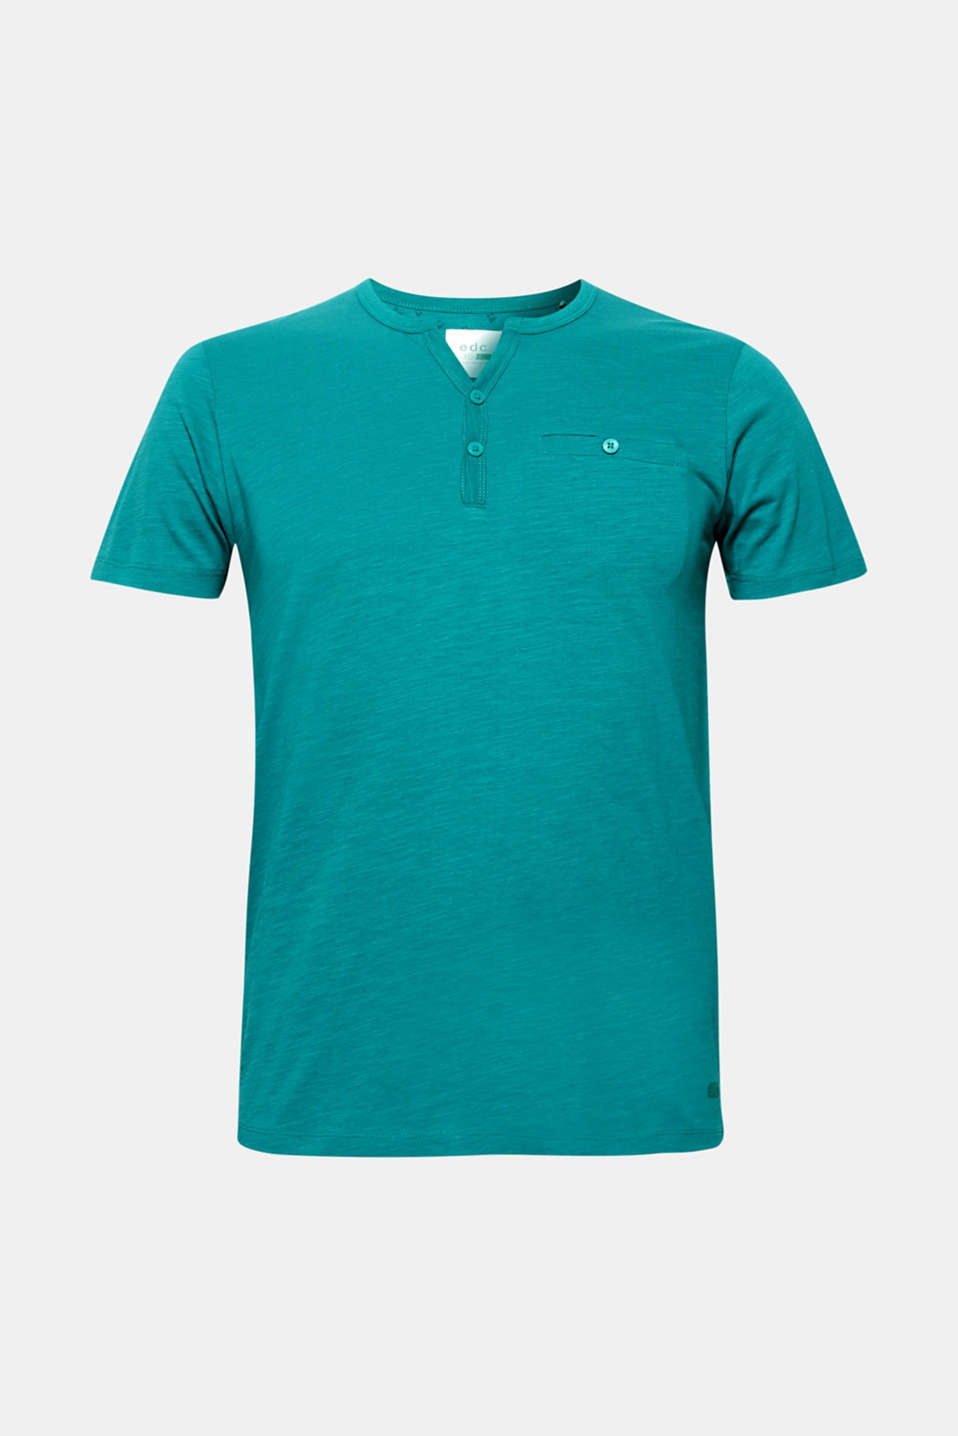 Slub jersey T-shirt in 100% cotton, DUSTY GREEN, detail image number 6